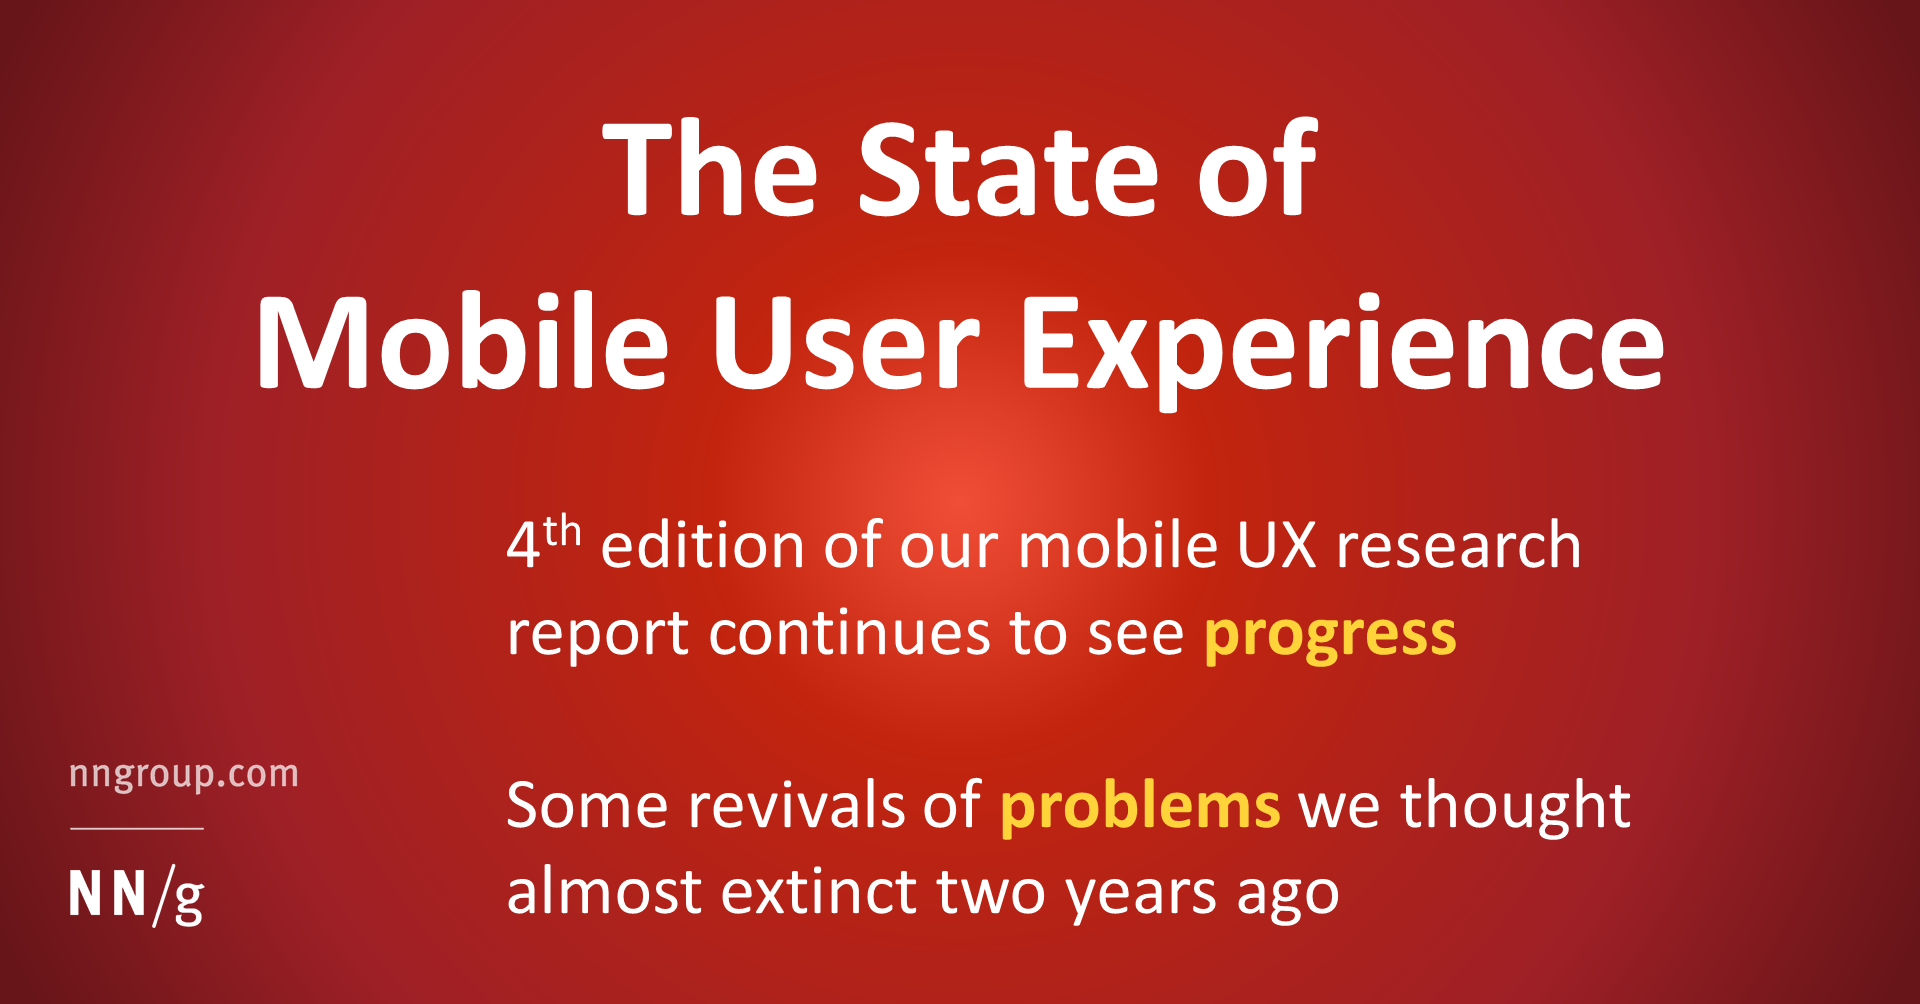 The State of Mobile User Experience